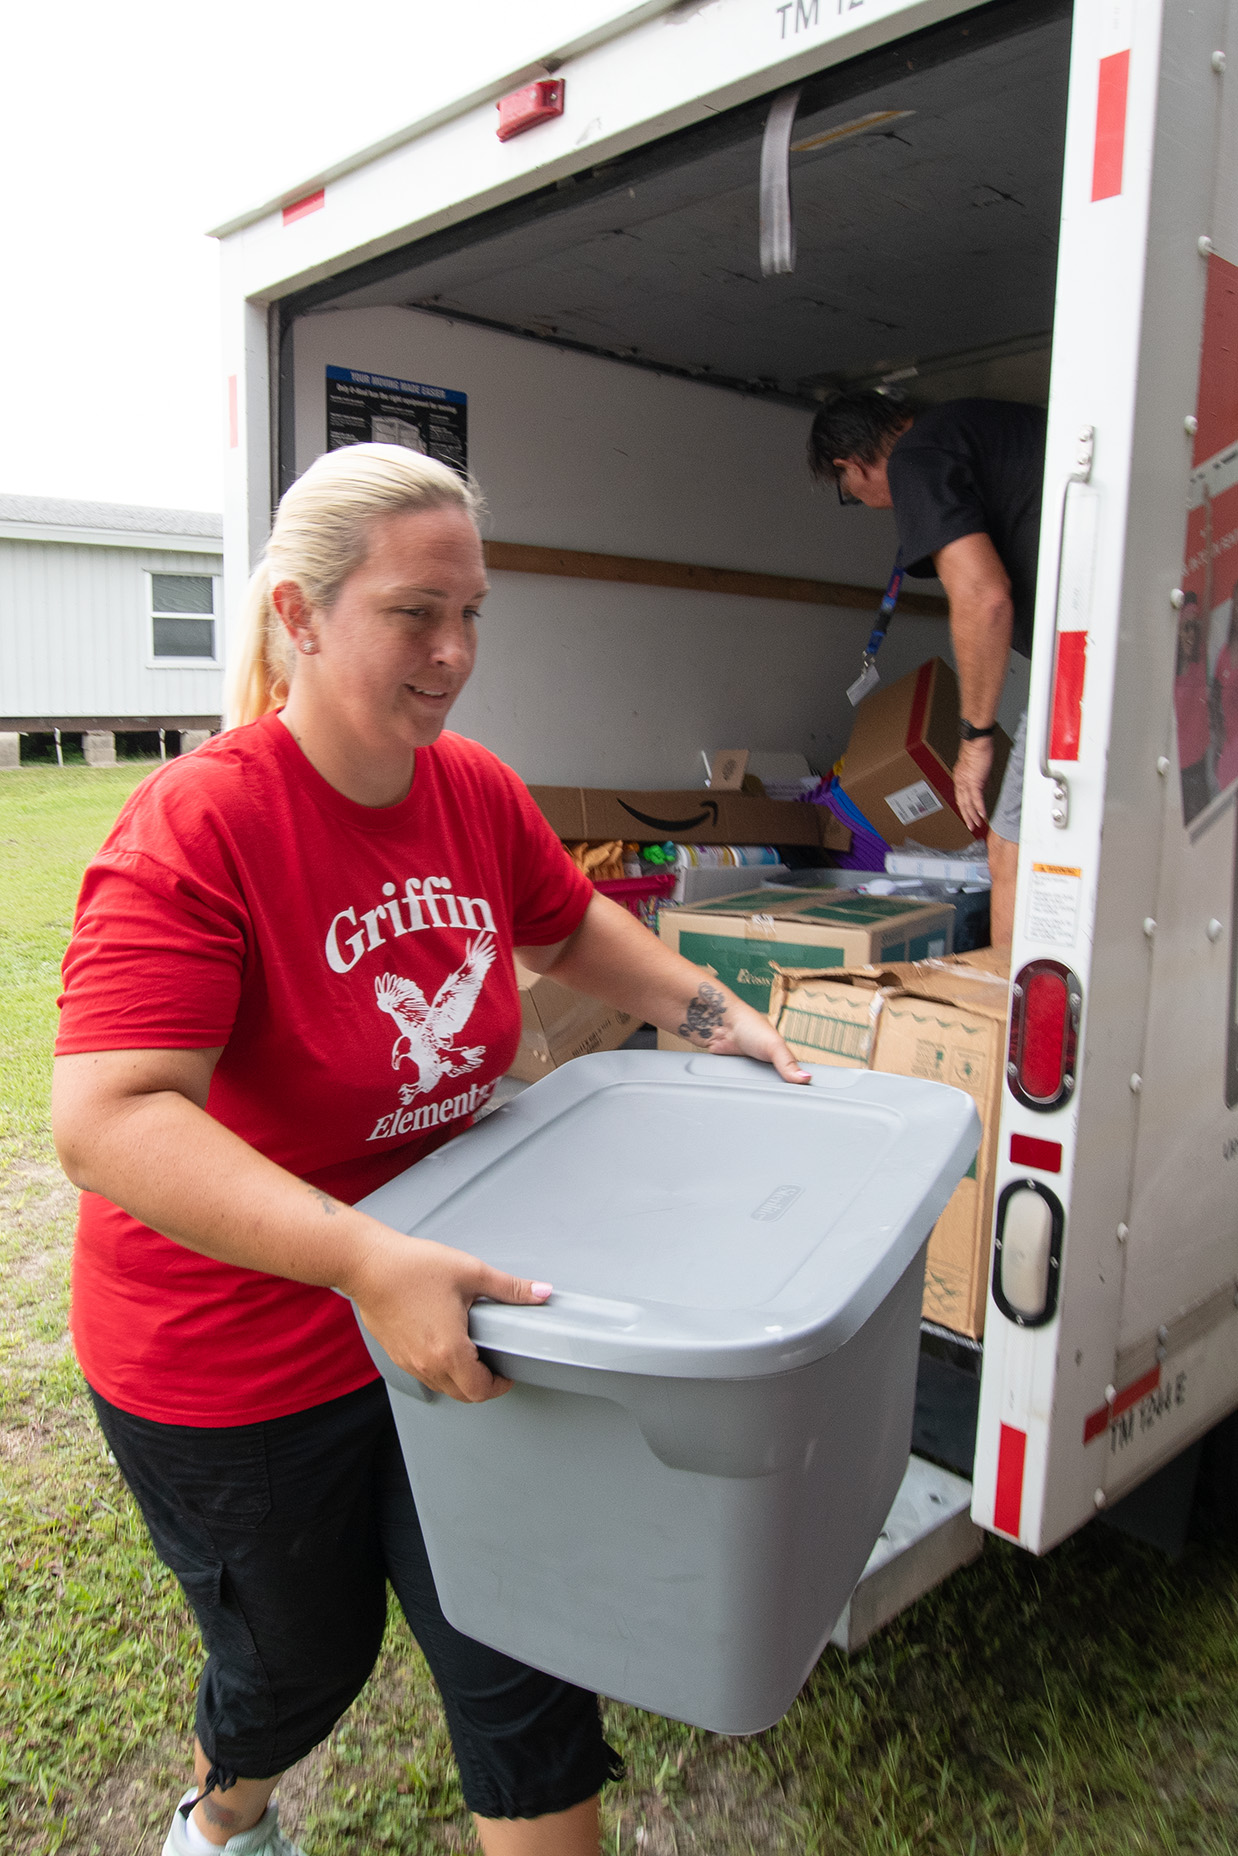 Jennie Cyran moving into her new classroom at Griffin Elementary